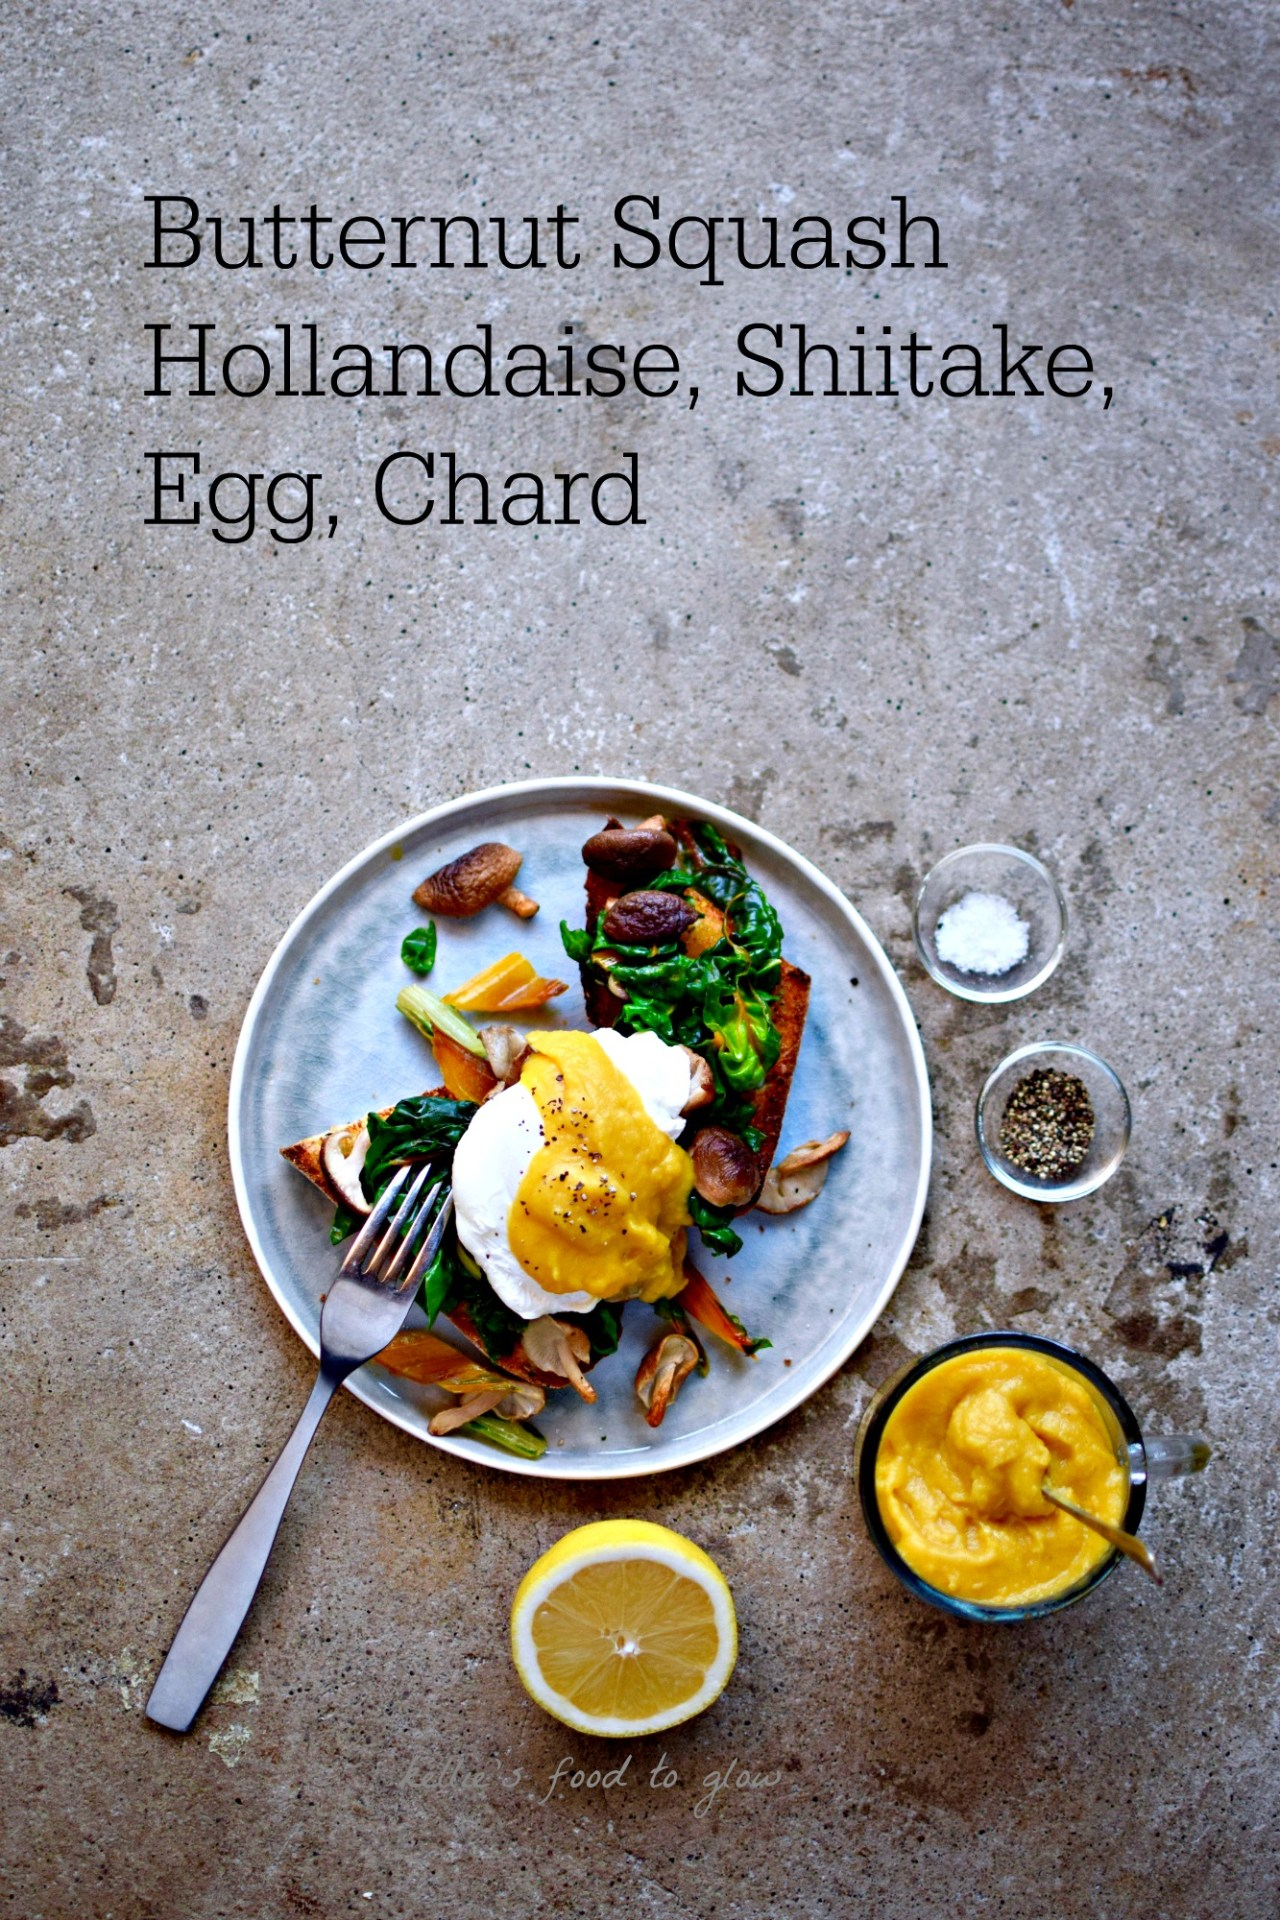 Blend steamed butternut squash with a few key ingredients and you have a credible whole food hollandaise sauce for topping your eggs, veggies, pasta - and anything else that takes your fancy. Once made, this sauce will be your go-to for luxurious but nutritious breakfasts, and more.